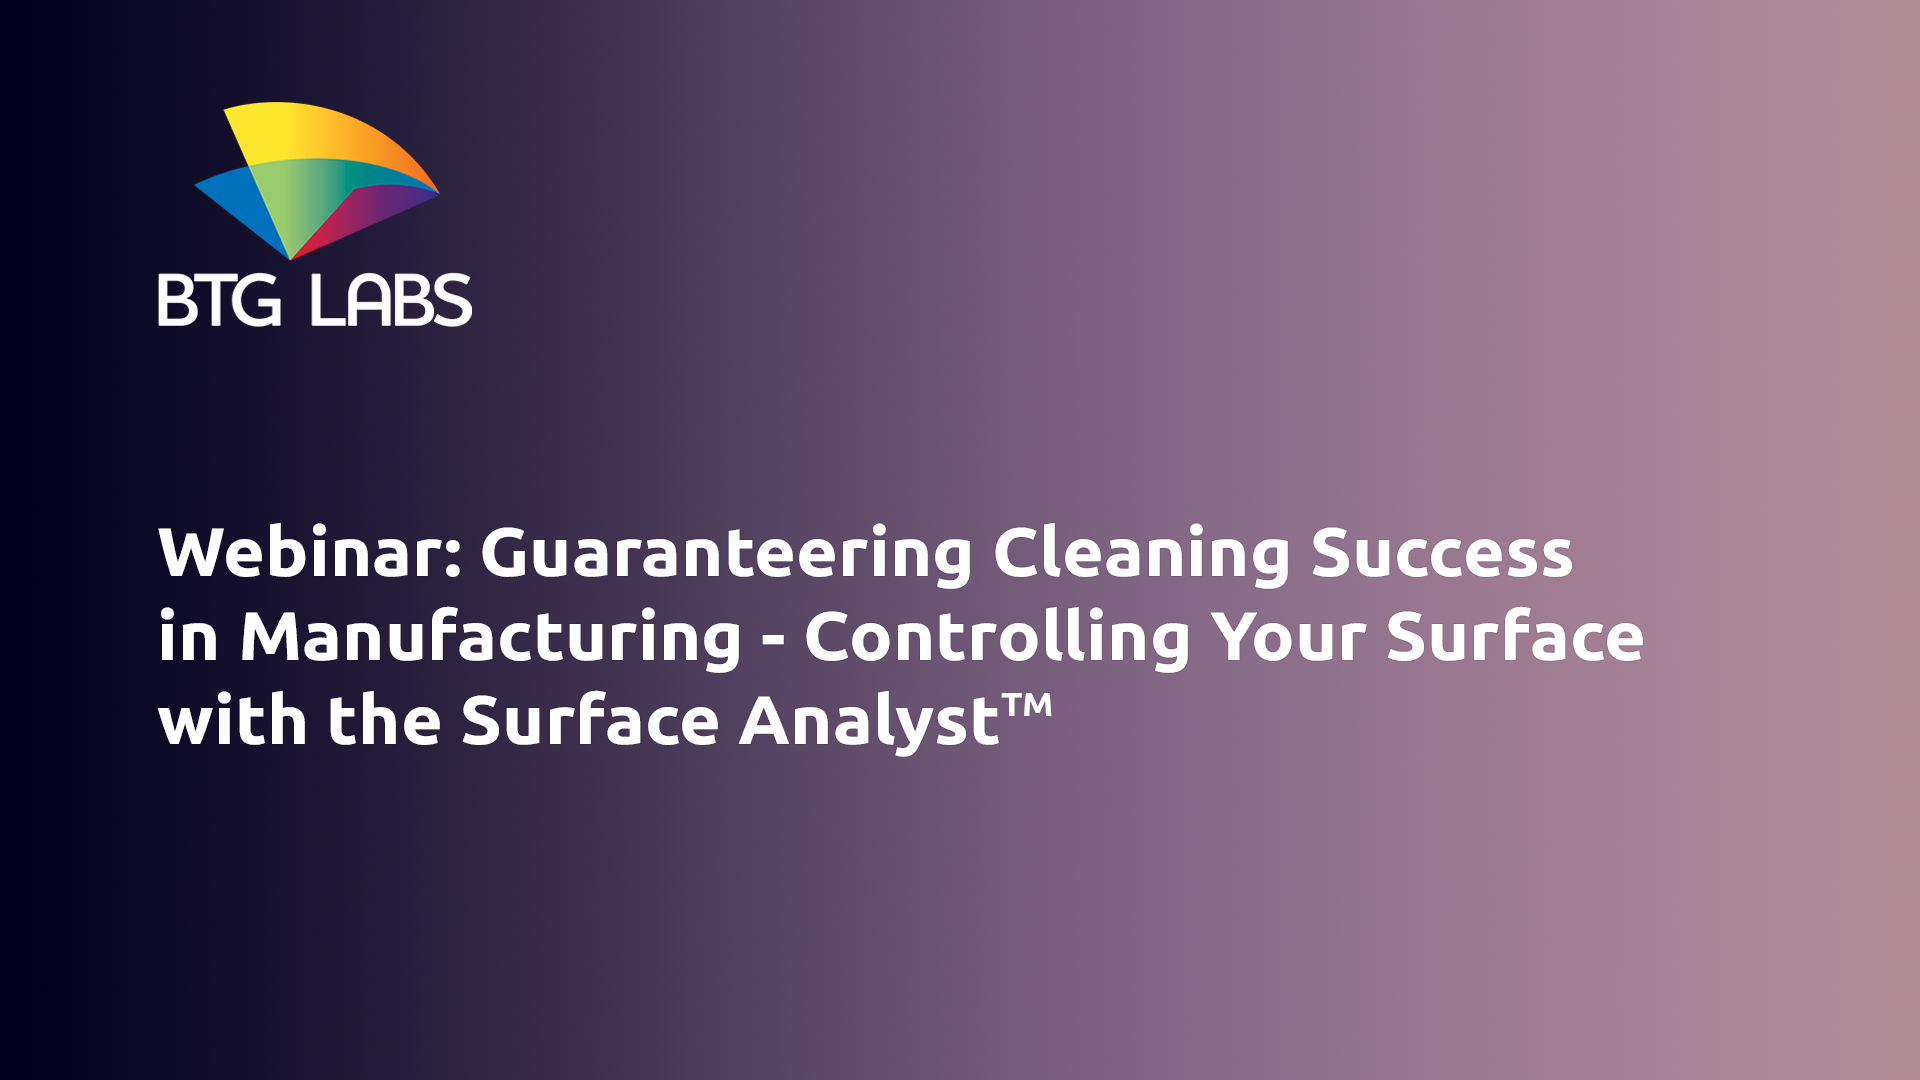 Guaranteeing Cleaning Success in Manufacturing - Controlling Your Surface with the Surface Analyst™